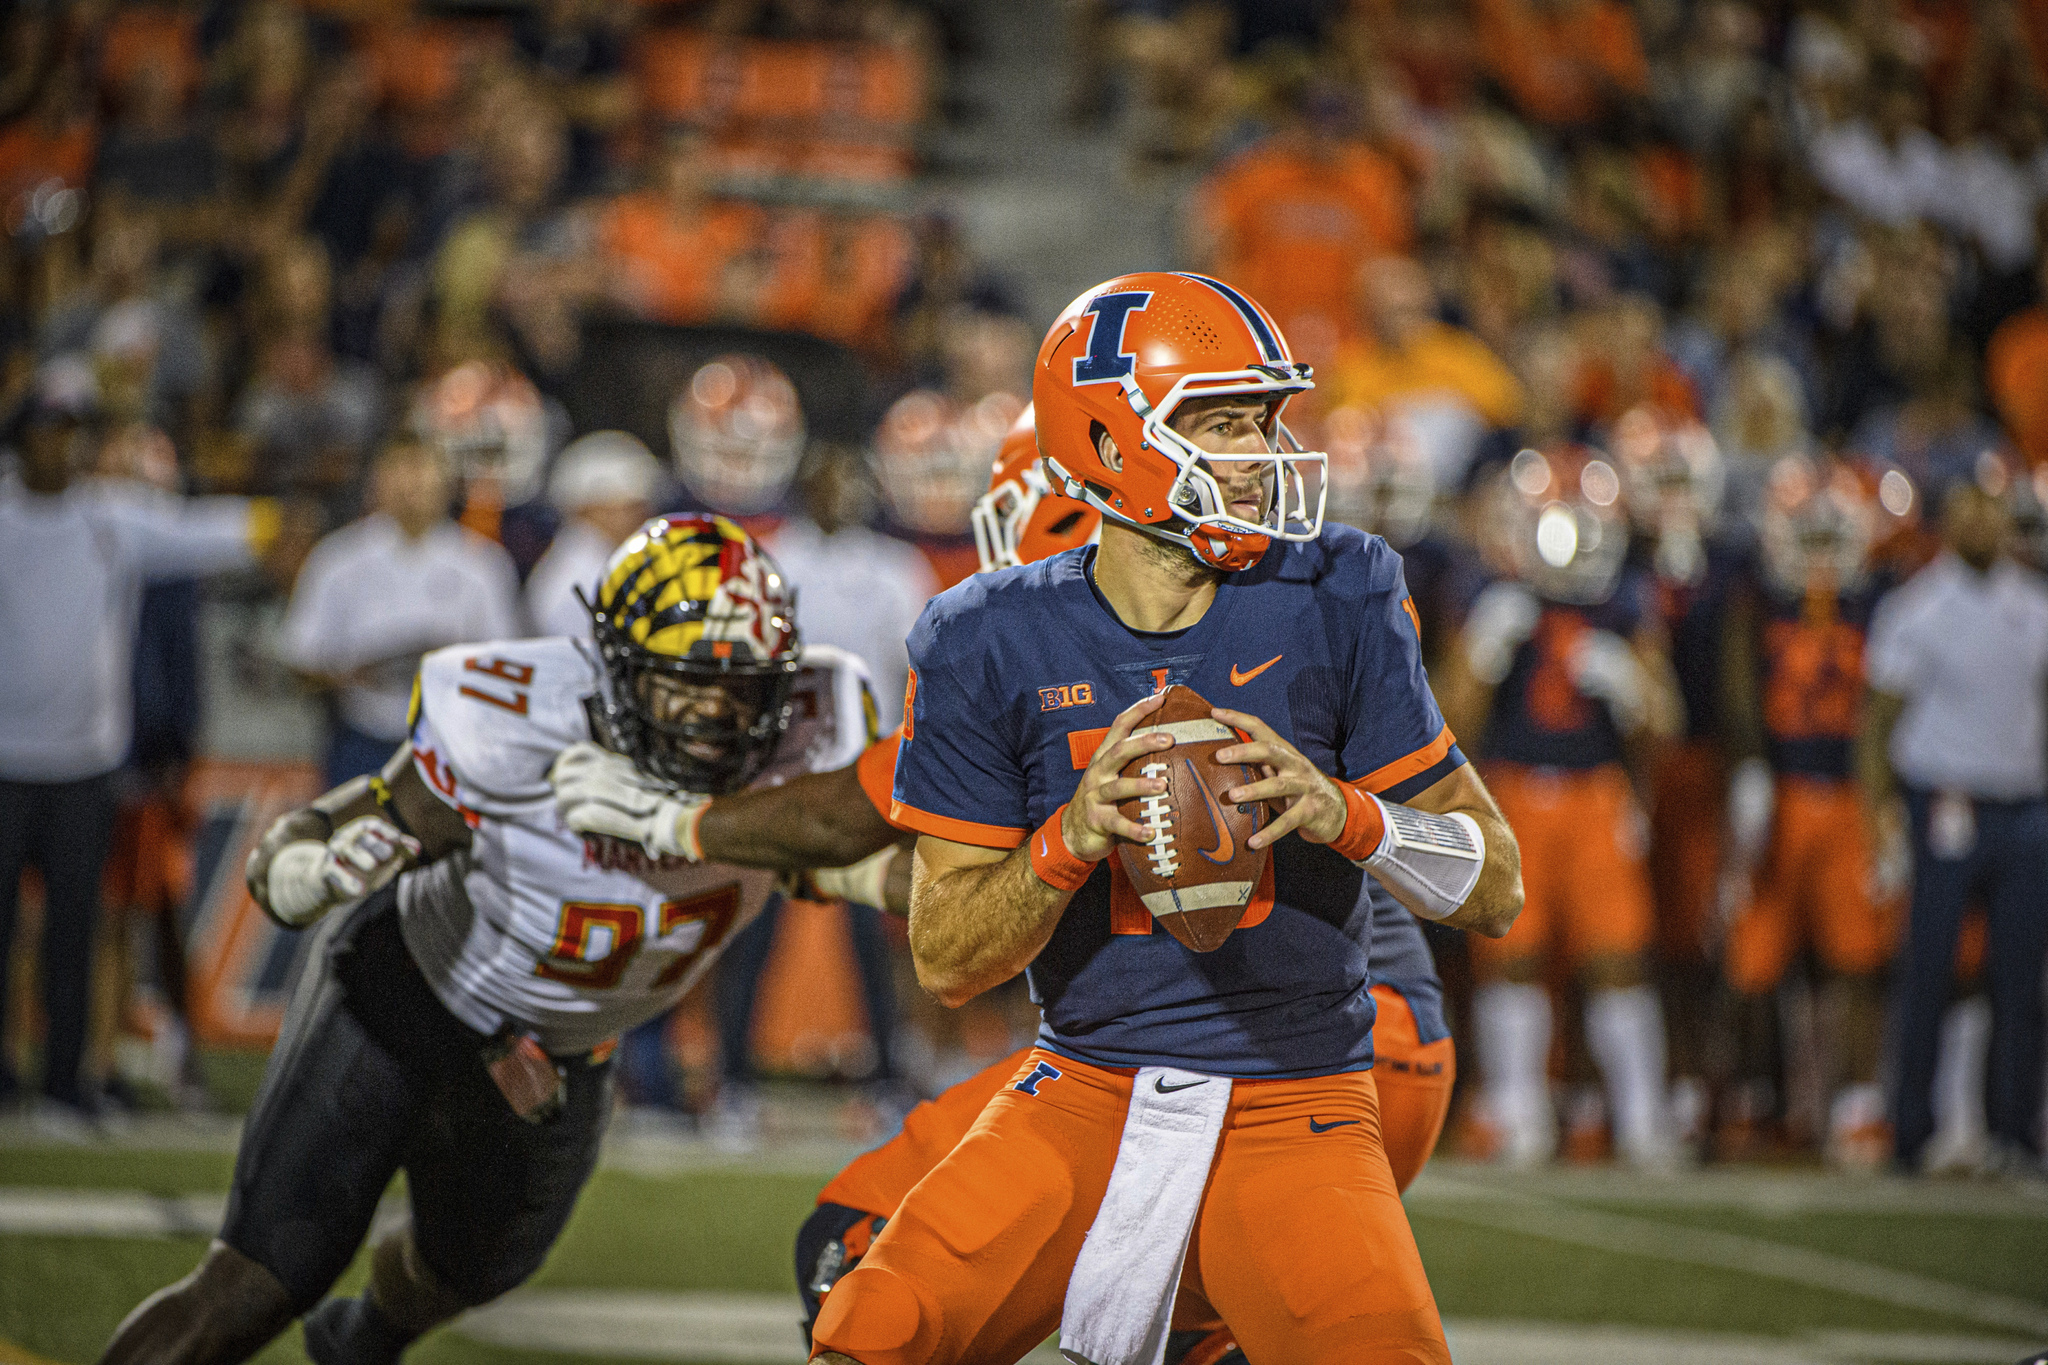 """""""There was a thought"""": Bielema Considered QB Change Before Illini's Final Drive vs. Maryland"""